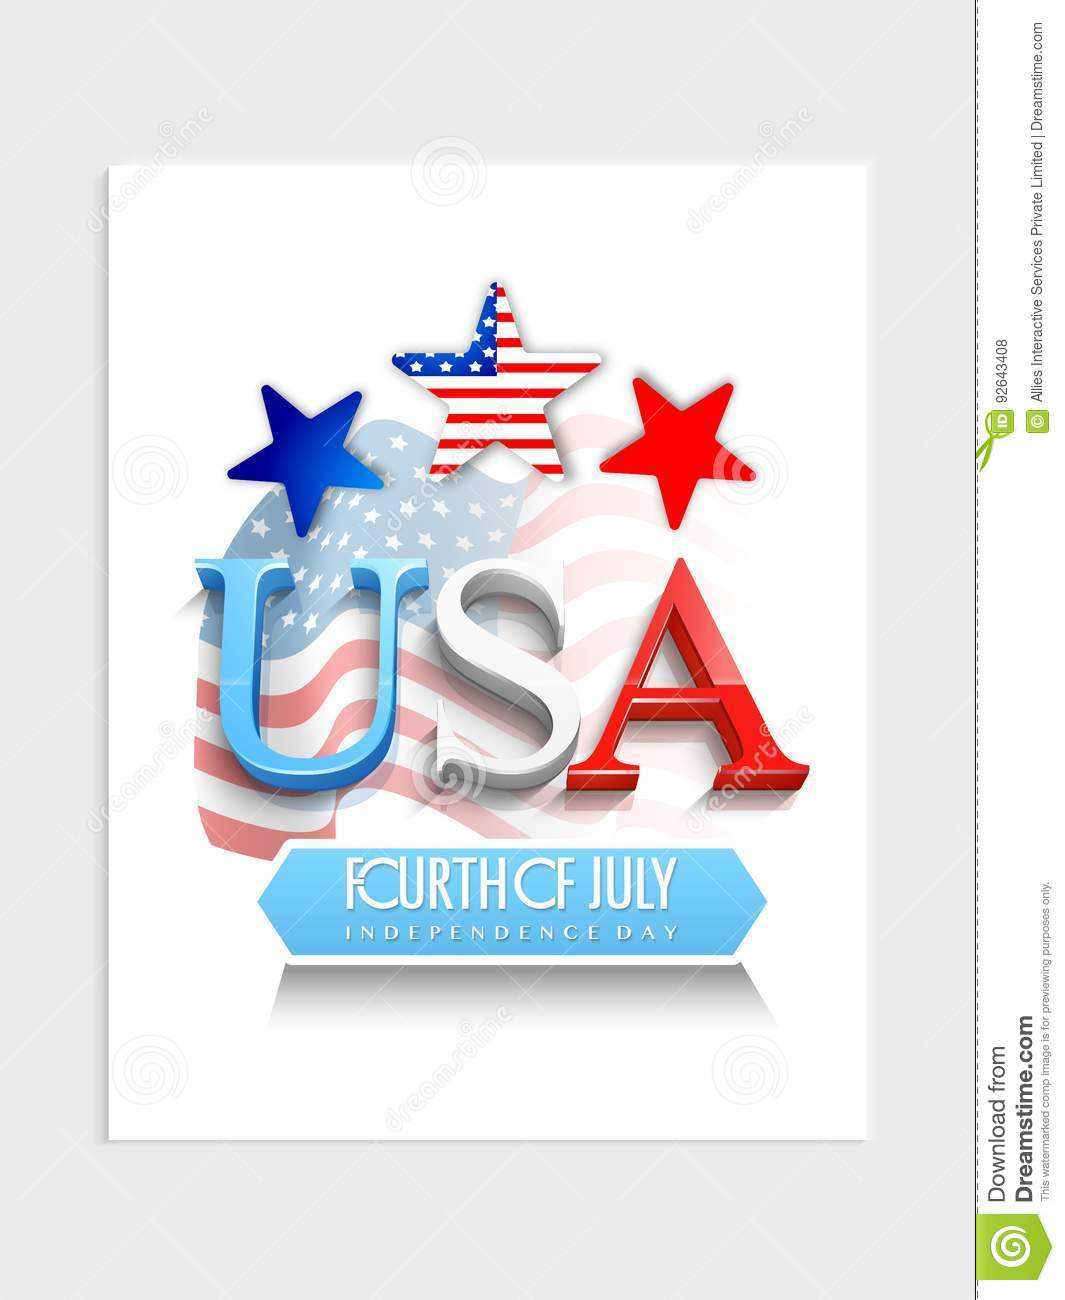 Template, Banner Or Flyer For 4th Of July Stock Illustration - 4th of july template